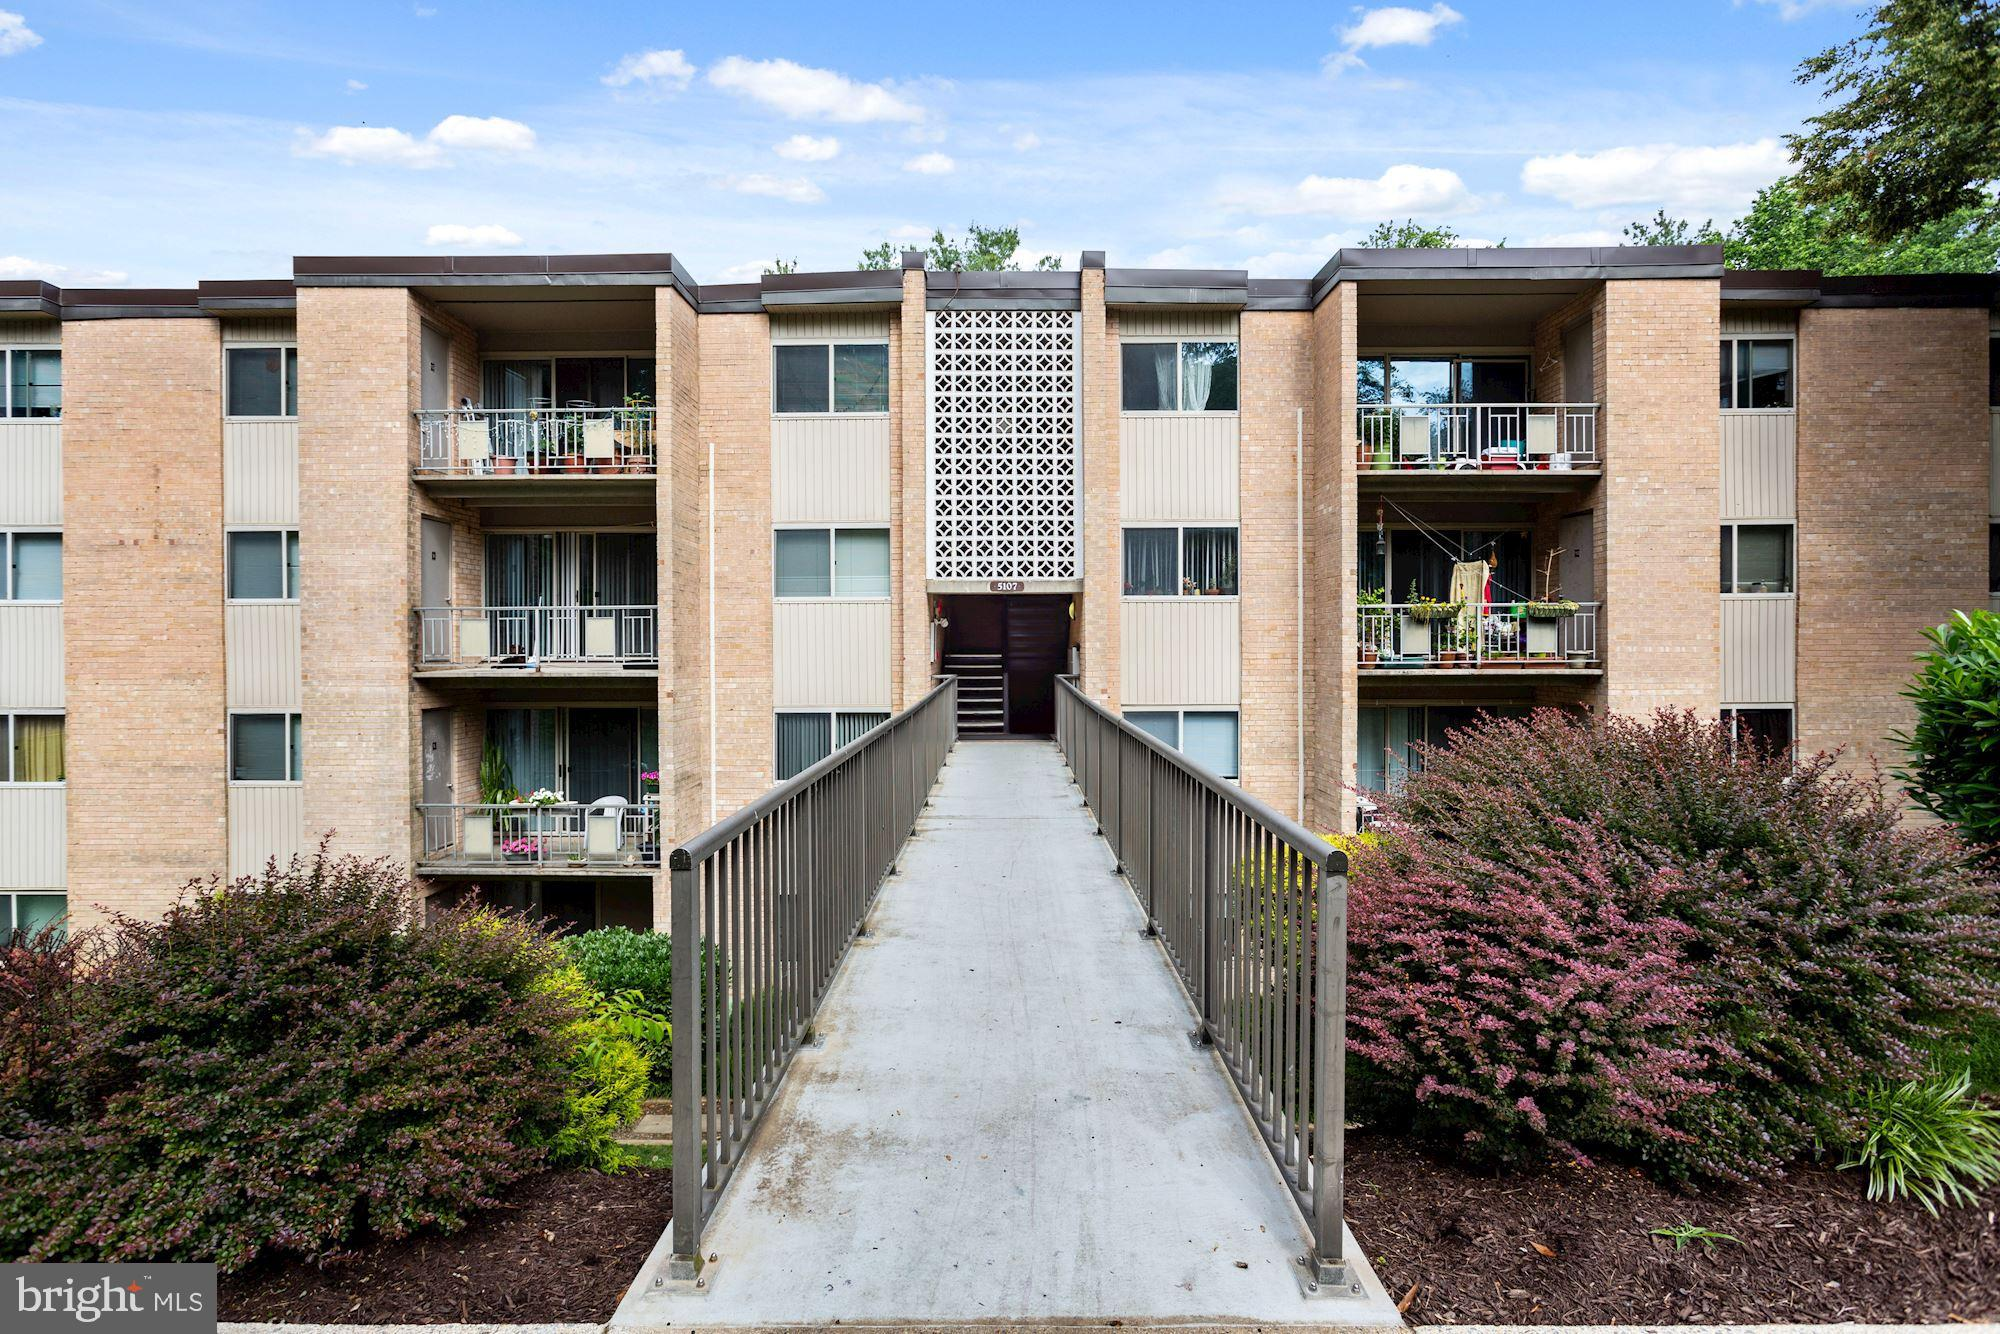 Open Saturday 6/19 from 1-3pm.  Welcome to this light-filled and updated unit tucked away in one of